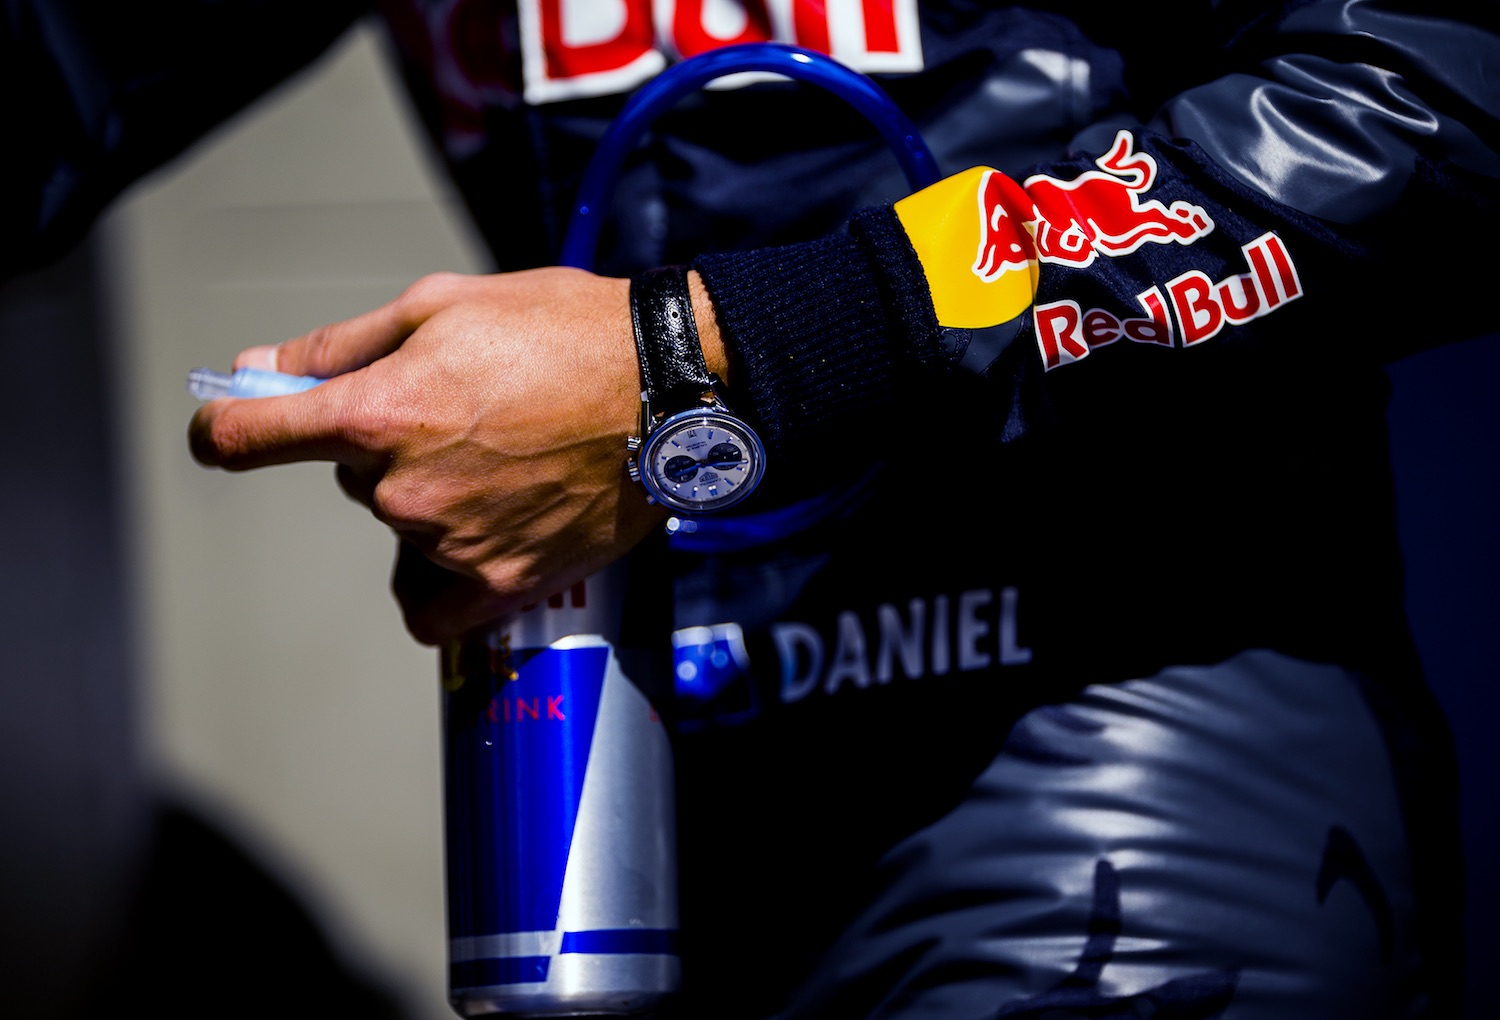 Watches and Formula 1 - Episode 4 - TAG Heuer and Red Bull Racing